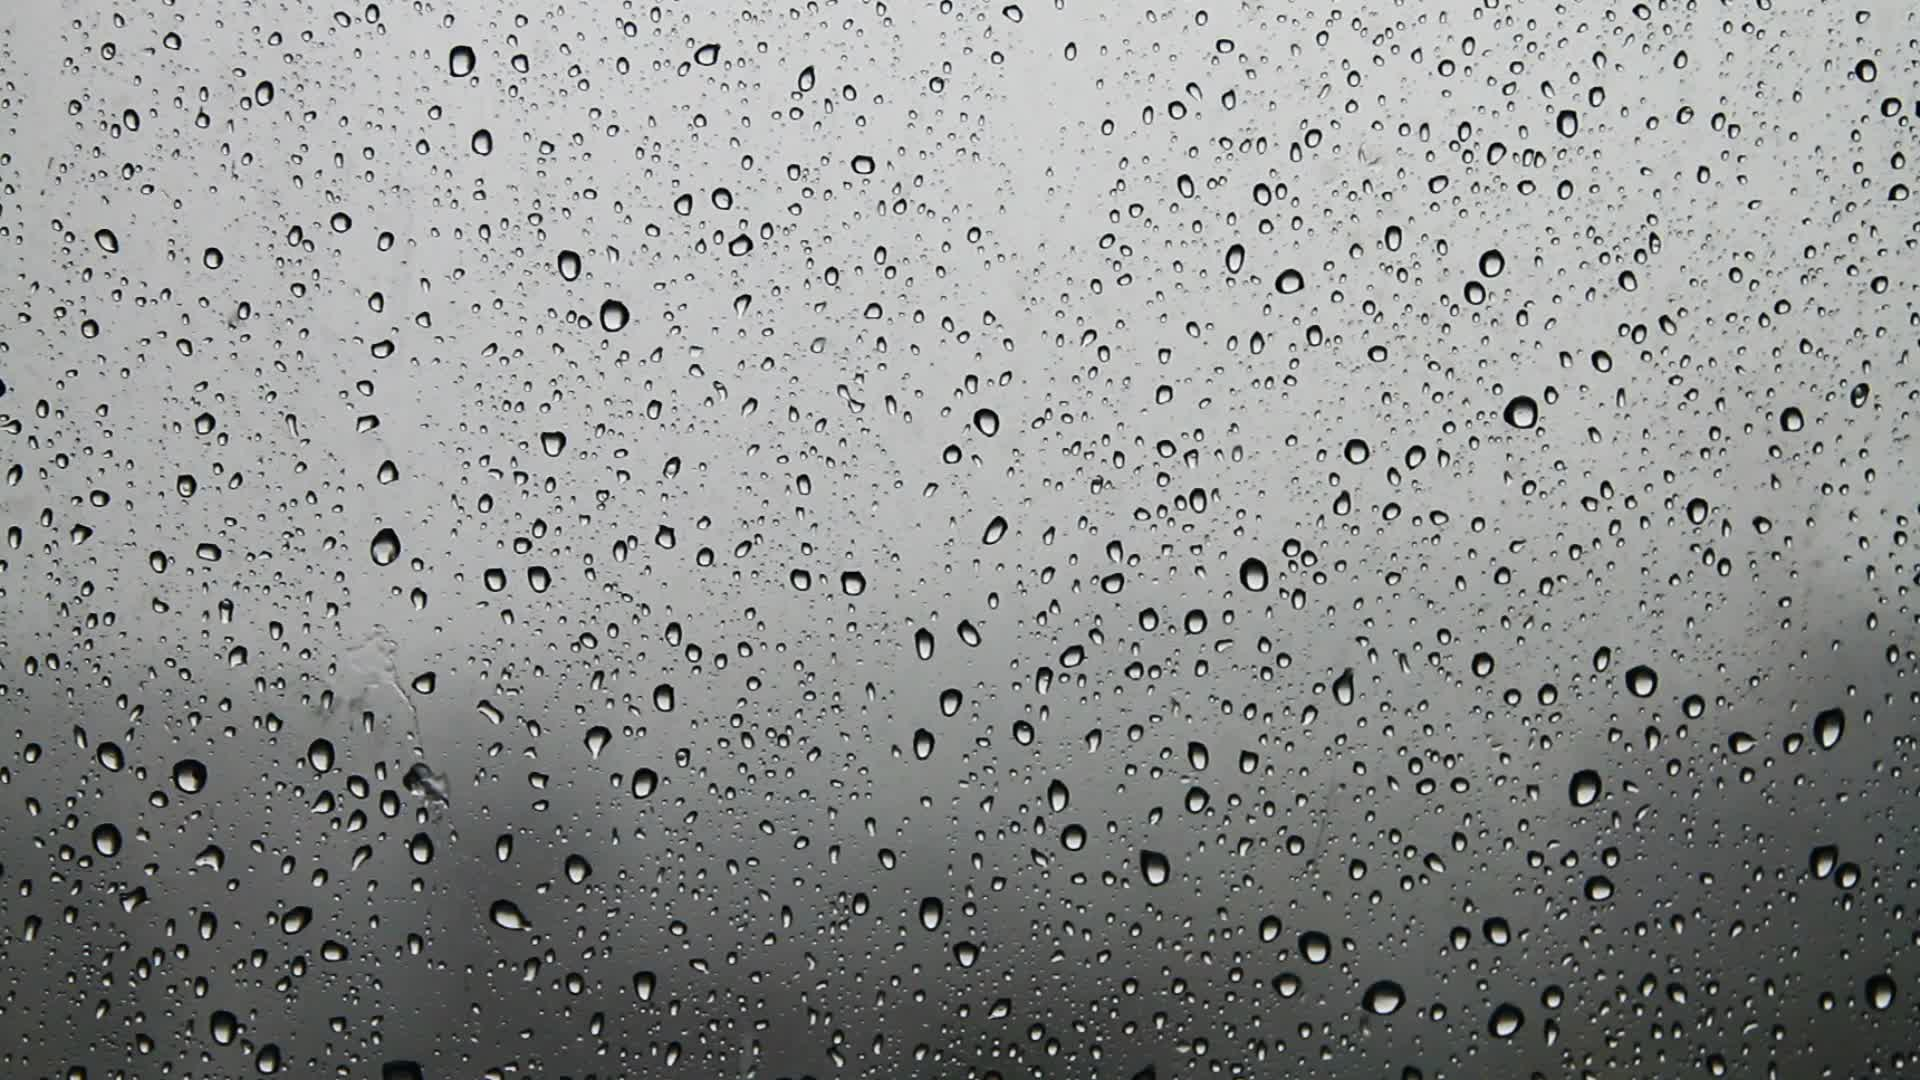 Raindrop Wallpaper Iphone X Rain Water Drops On Window Glass Hi Res Video 11478061